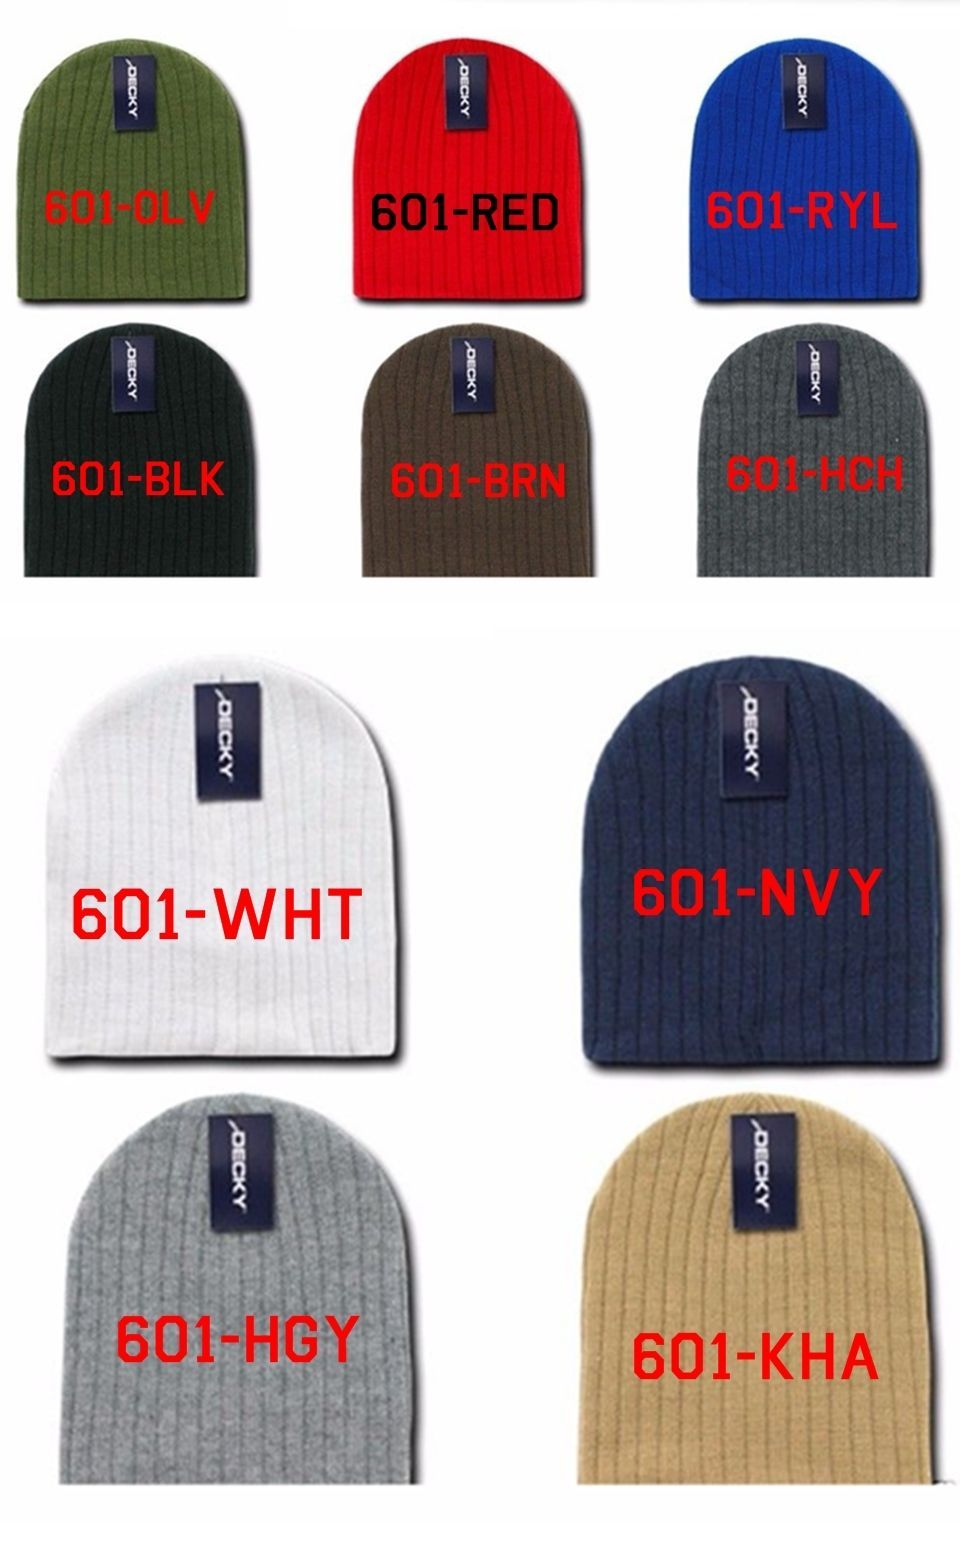 CUSTOM EMBROIDERY Personalized Customized Decky Beanies Cable Knit Cap Hat 601